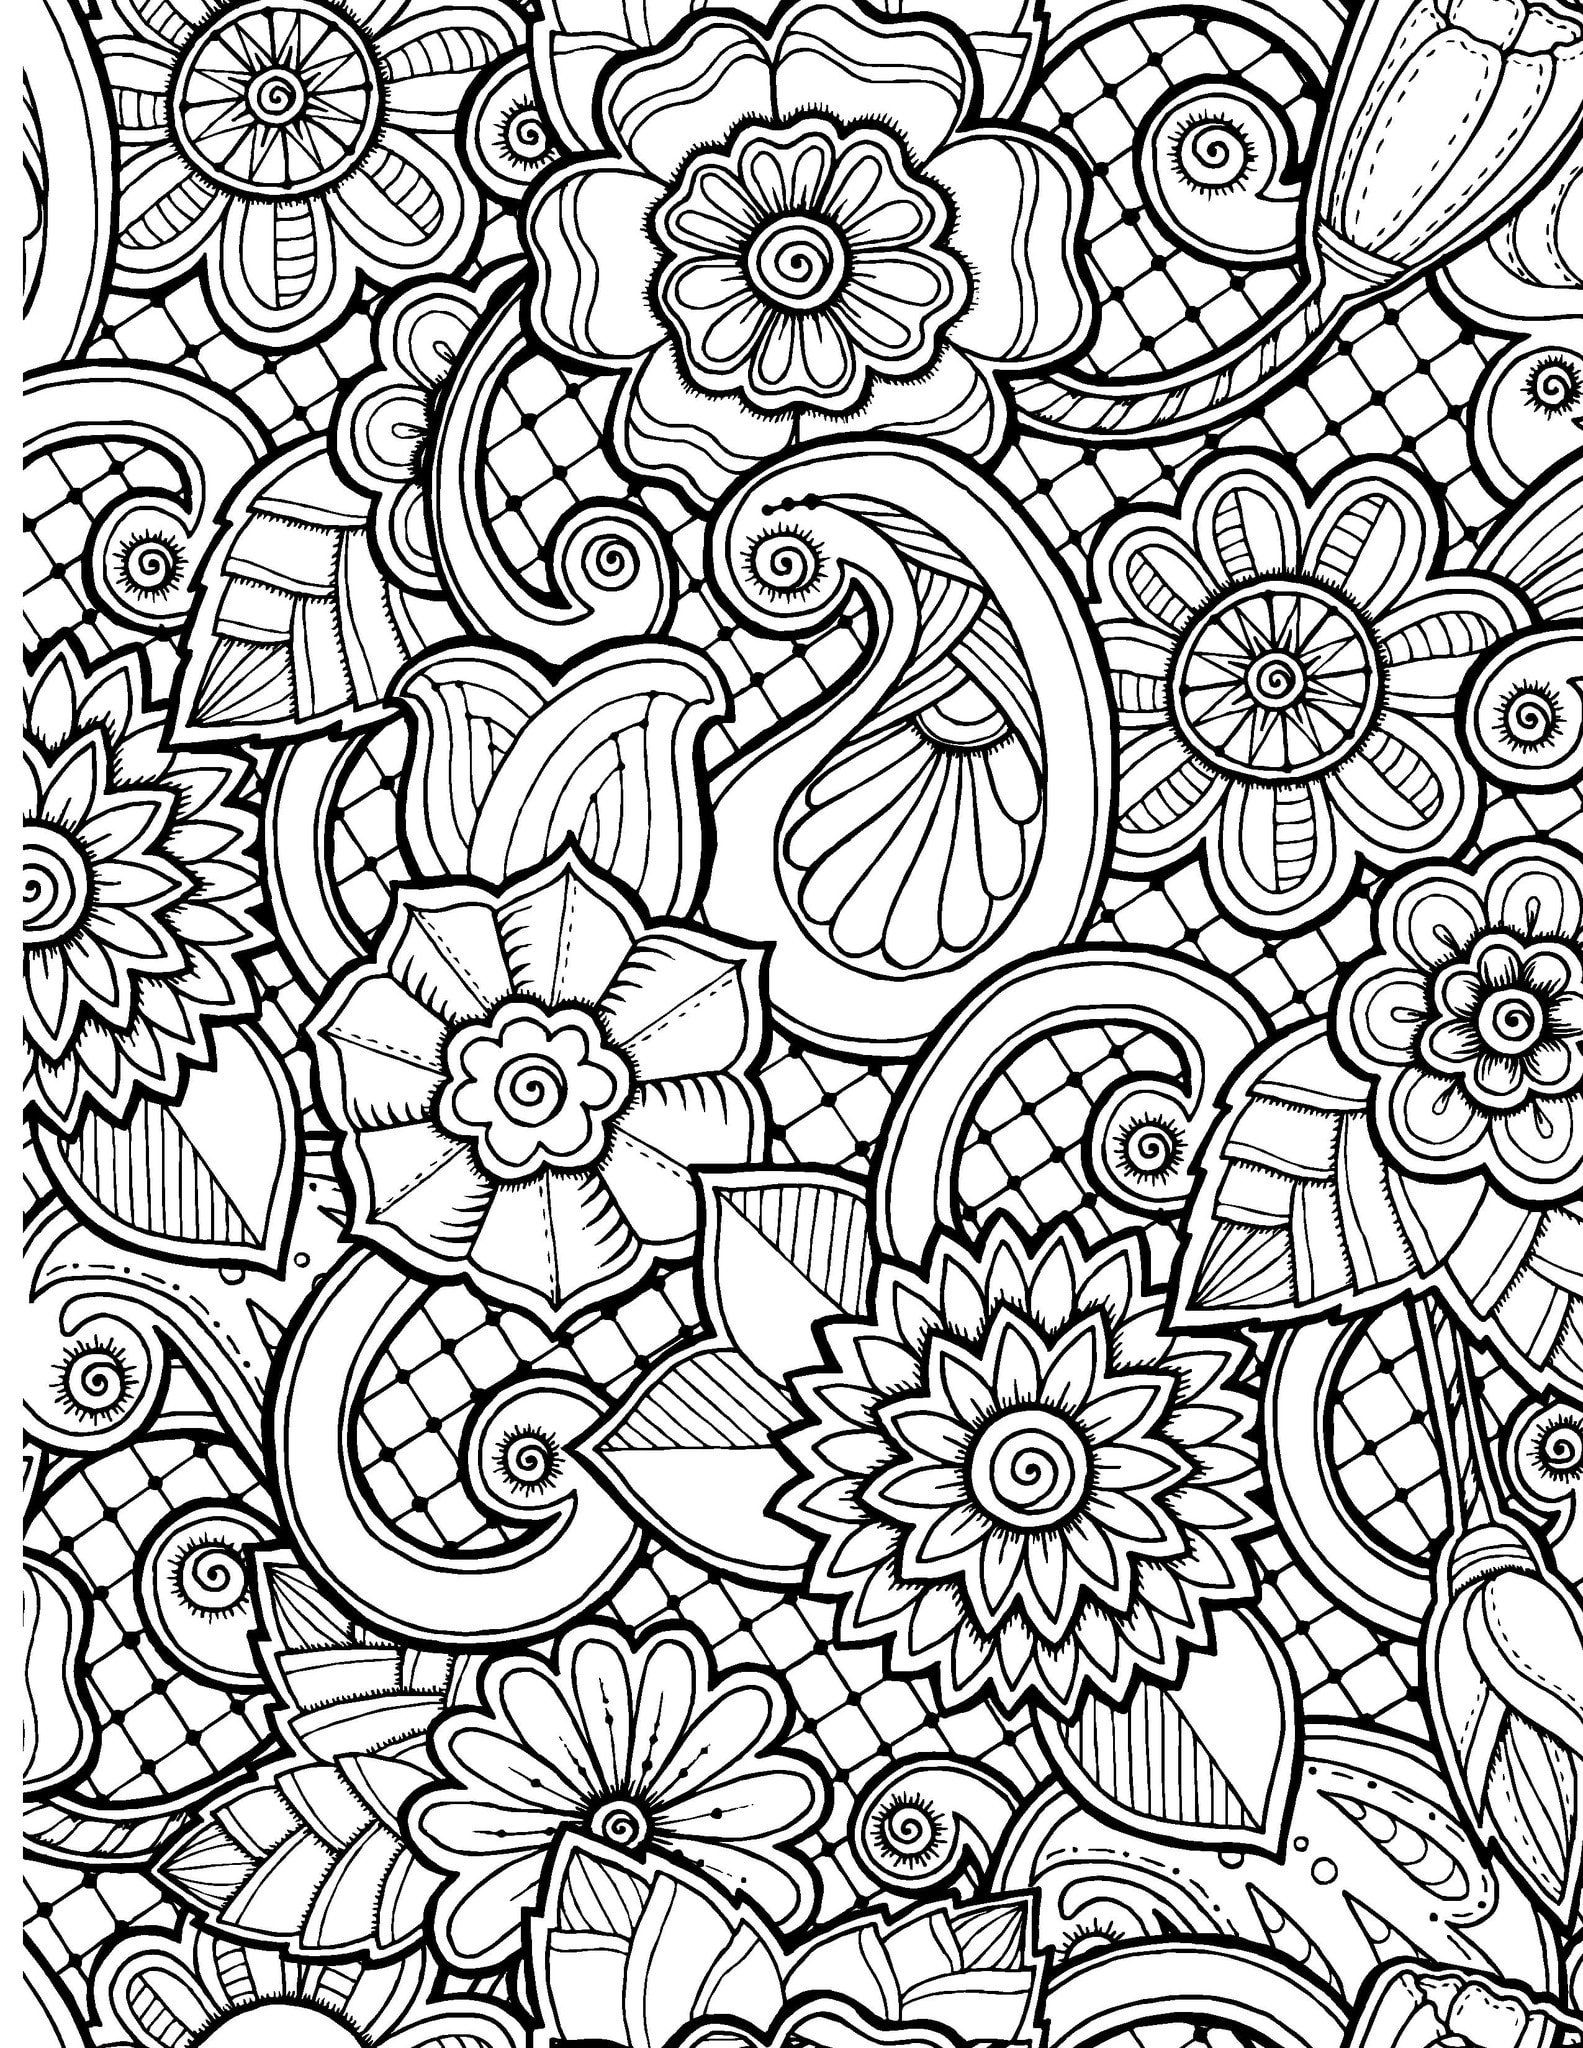 abstract flower coloring pages gallery abstract flowers coloring pages pages flower abstract coloring